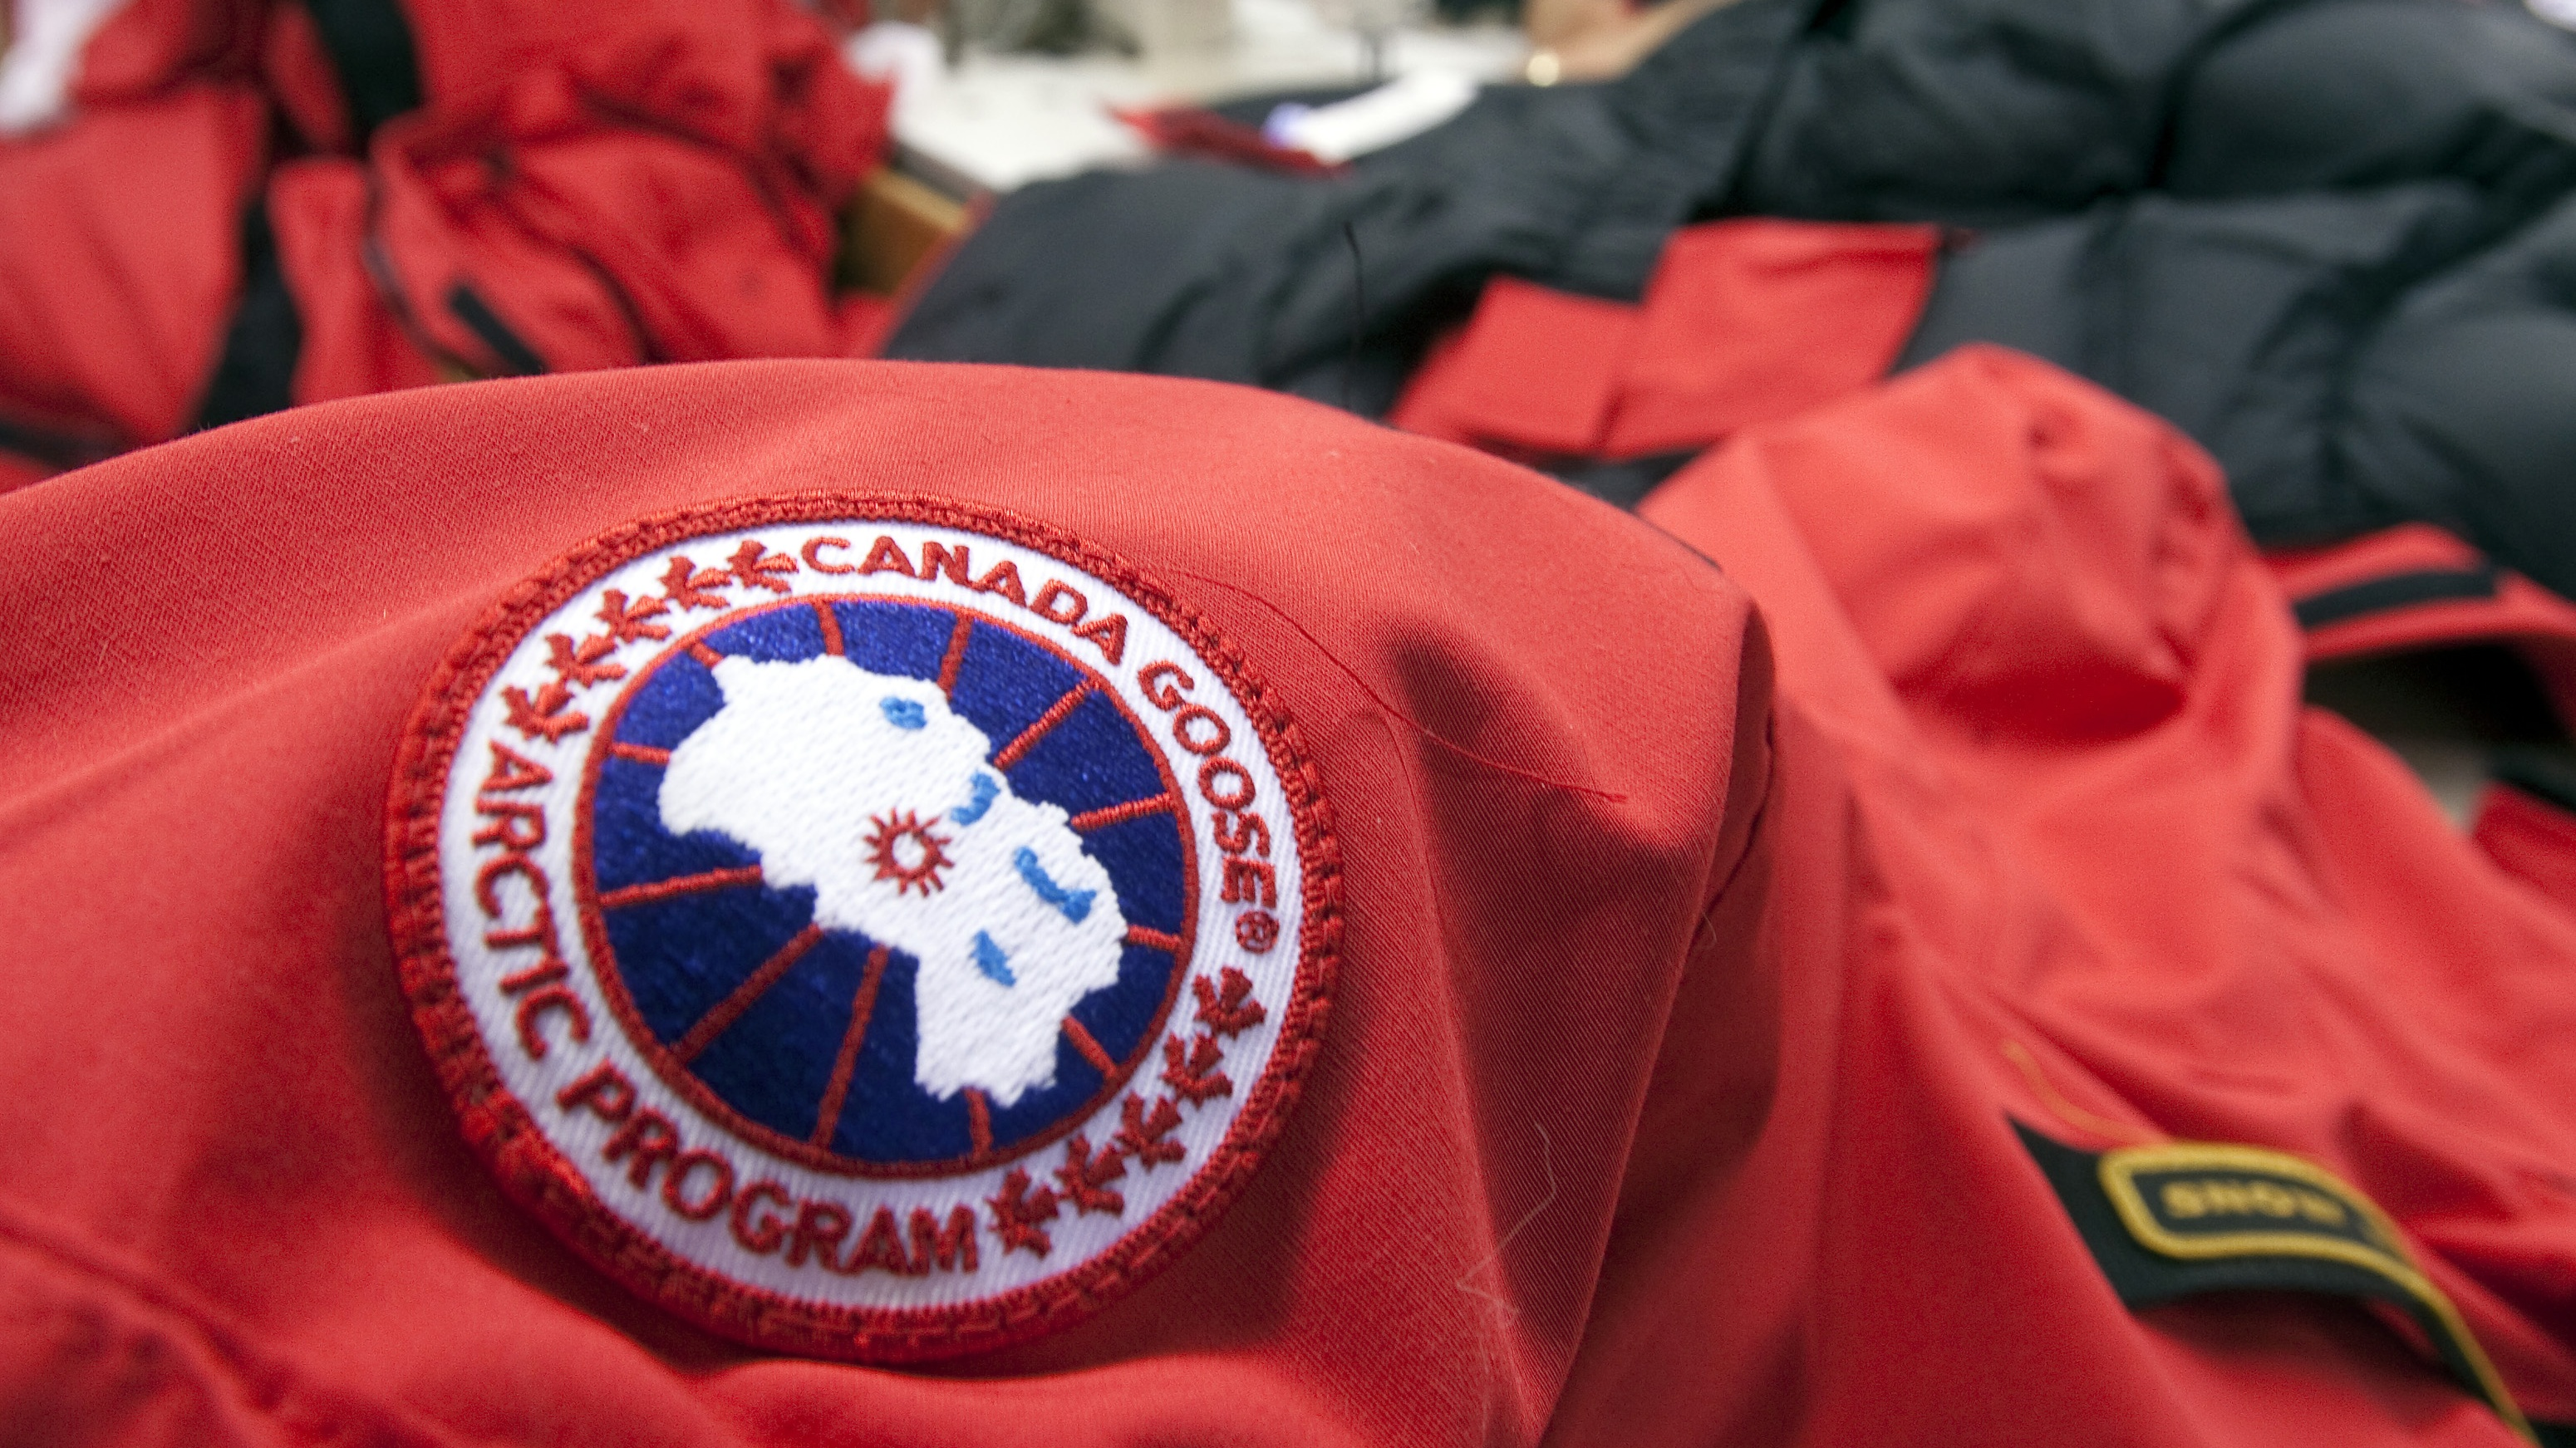 Workers piece together outerwear on the manufacturing floor of Canada Goose's facility in Toronto January 17, 2012. Coat maker Canada Goose found its niche by shunning the make-it-offshore phenomenon, producing its heavy duty down parkas on Canadian soil. Even as Canada's clothing industry crumbles, with employment down 60 percent in just over a decade, the 55-year old family-run shop bucked the broader trend of moving production to low-cost locales by keeping manufacturing at home. Picture taken January 17. To match Analysis CANADA-NICHE/ REUTERS/Fred Thornhill (CANADA - Tags: BUSINESS TEXTILE)